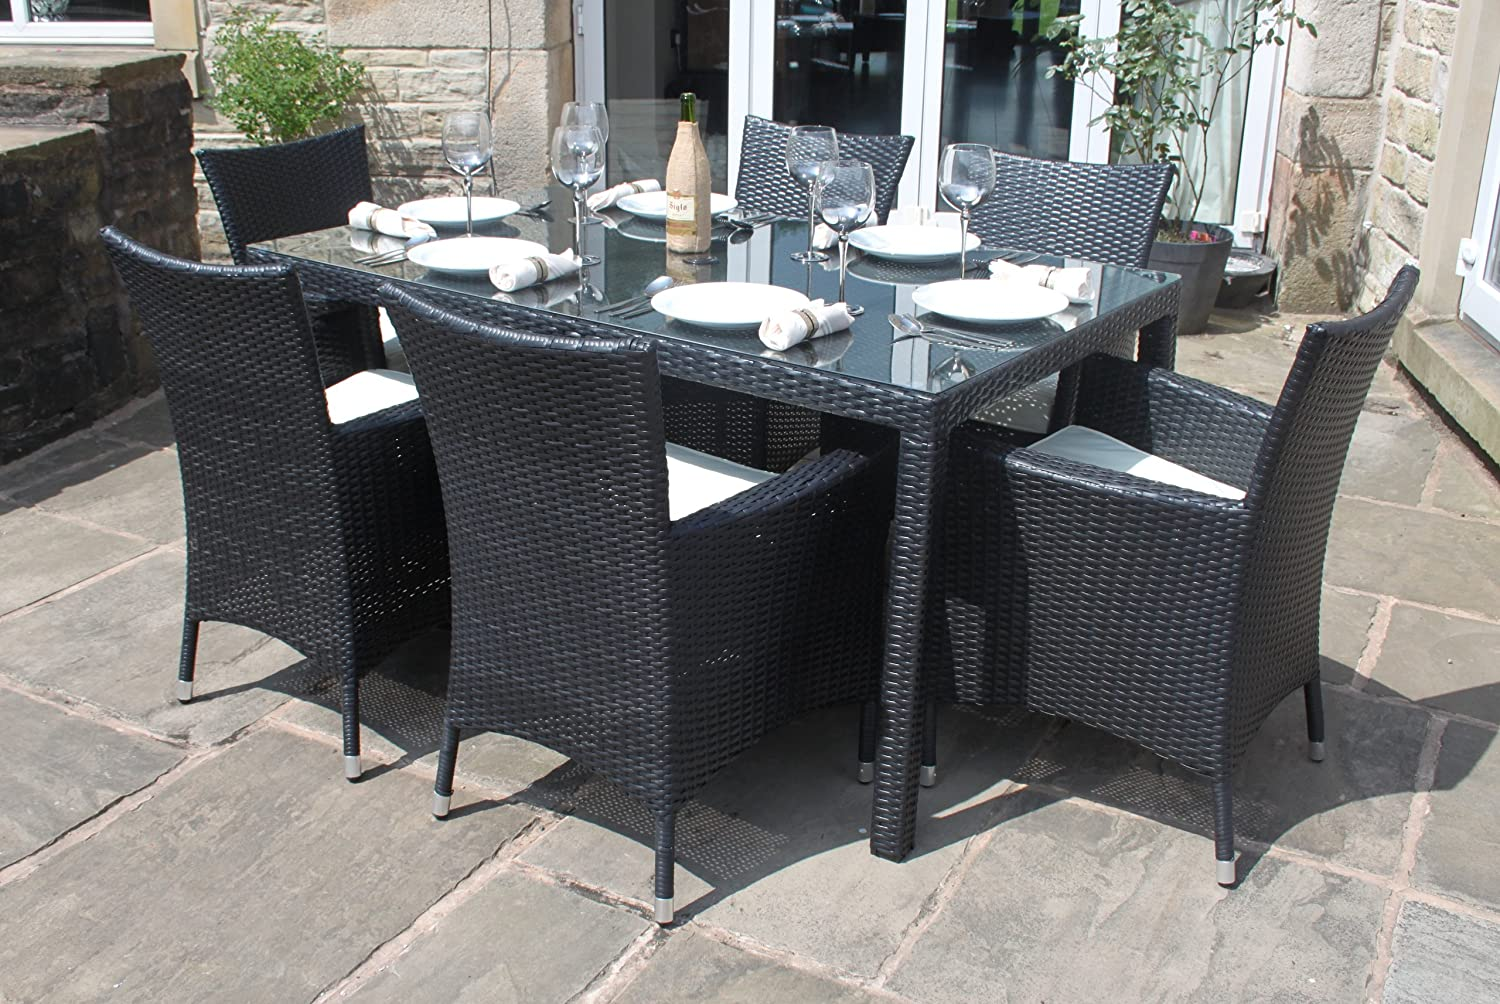 weatherproof rattan 6 seater garden furniture dining set in black amazoncouk garden outdoors - Rattan Garden Furniture 6 Seater